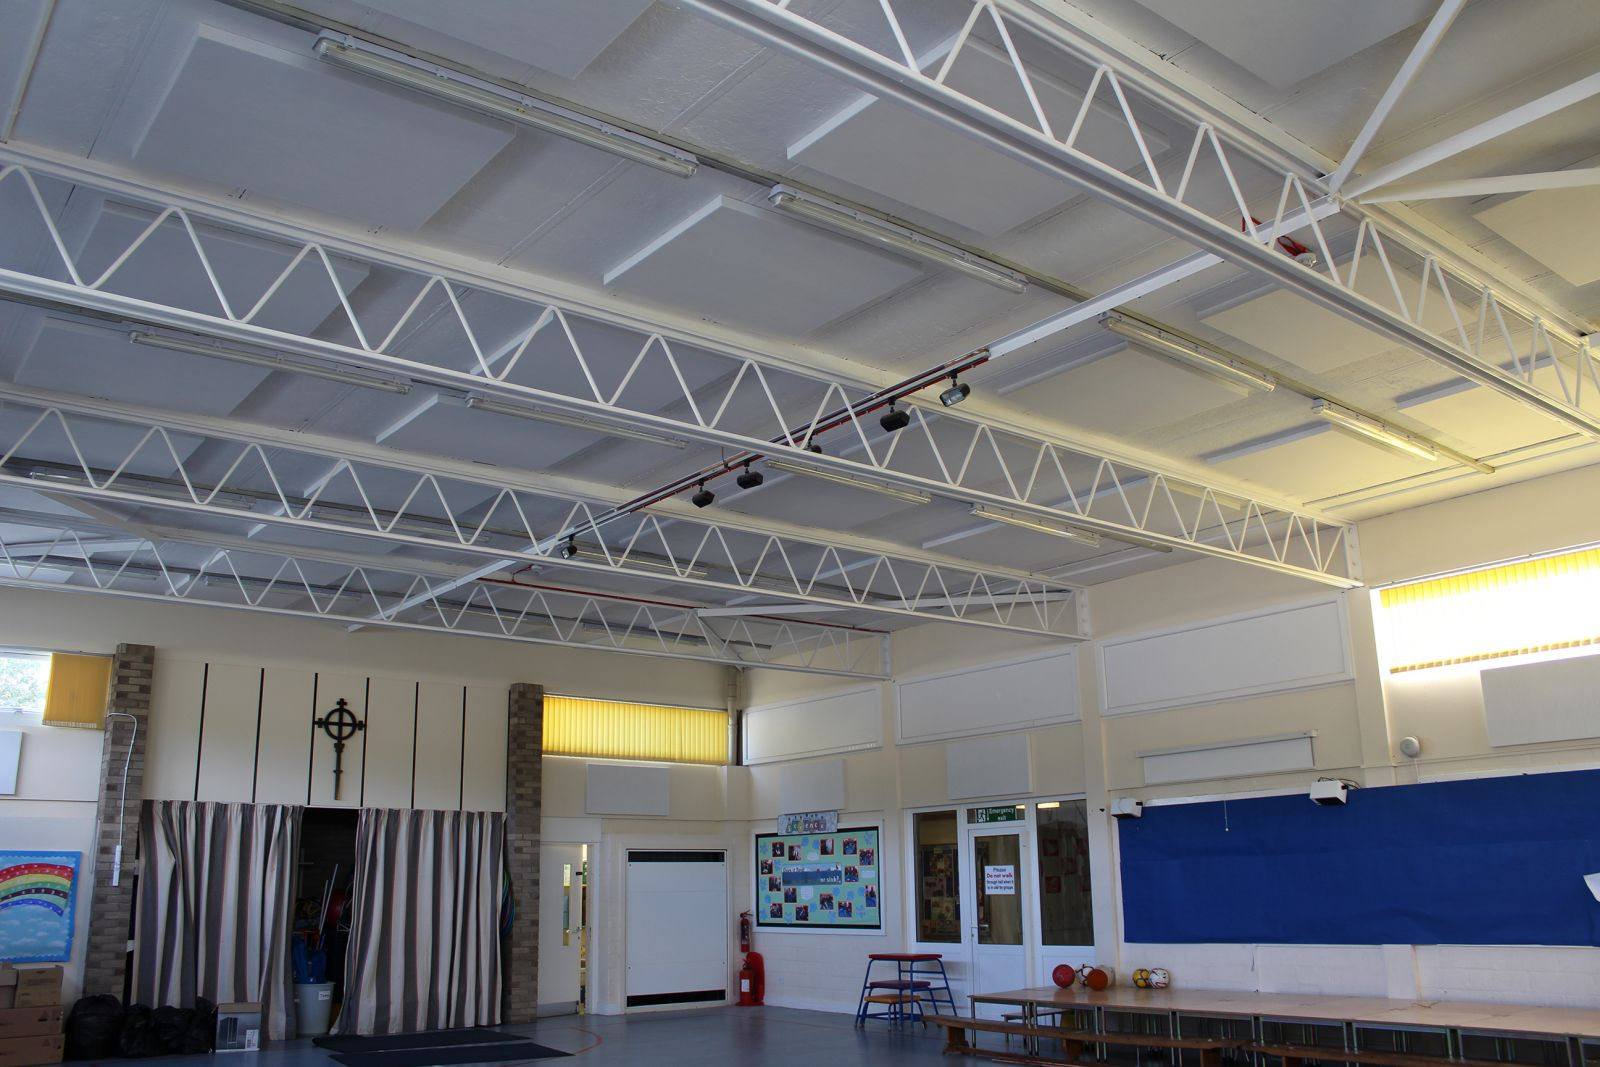 Sonata Aurio Class A Acoustic Panels within the hall at Morpeth All Saints